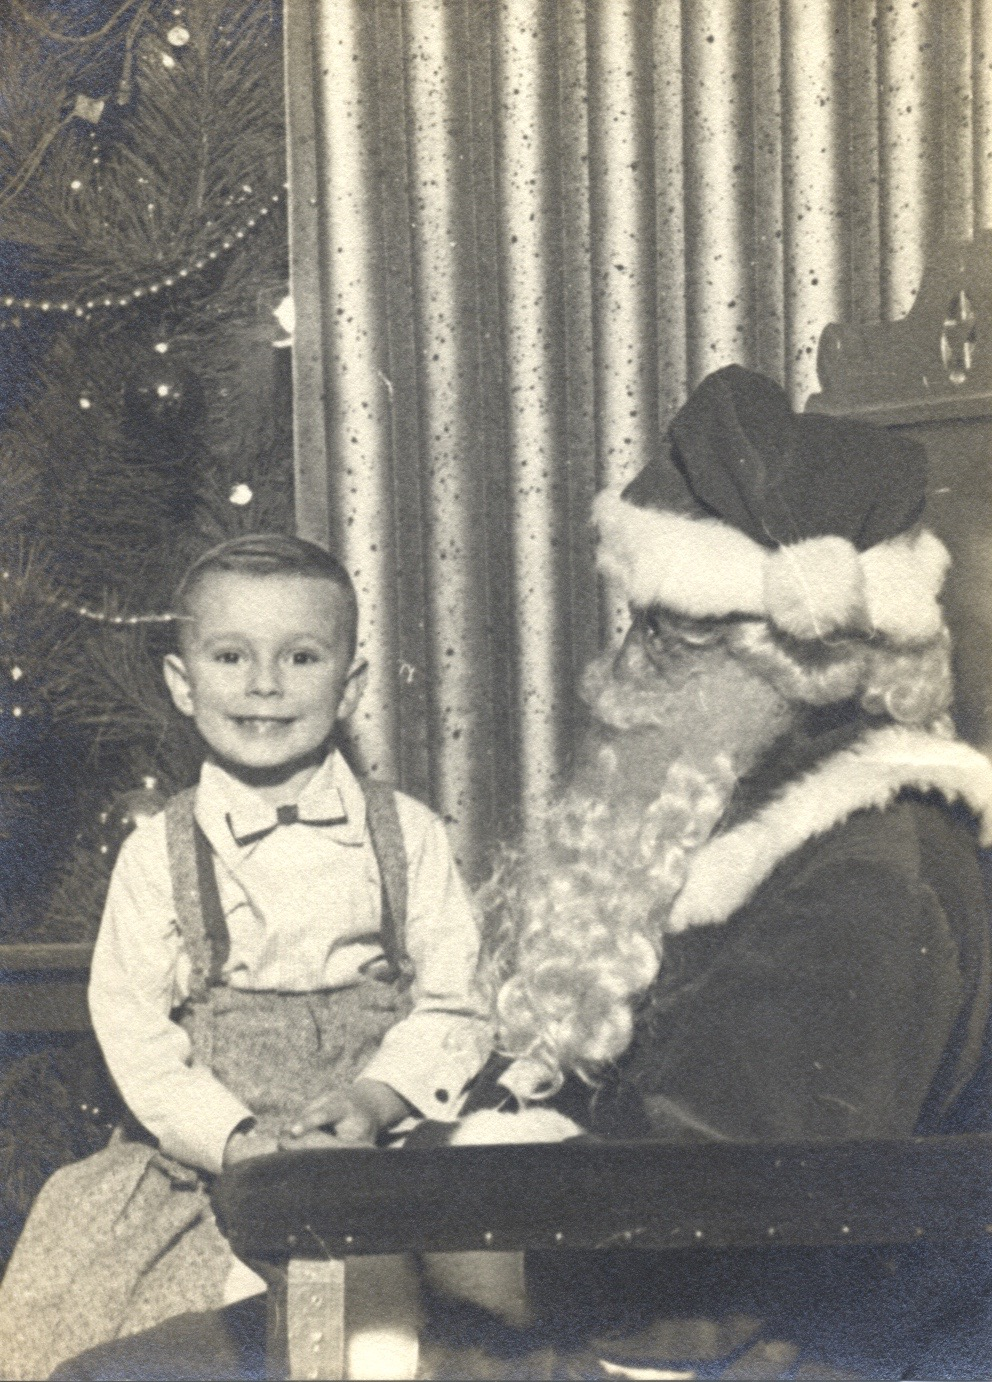 This is me with one of Santa's helpers, or so I thought. I think it's from December 1953, making me four at the time.